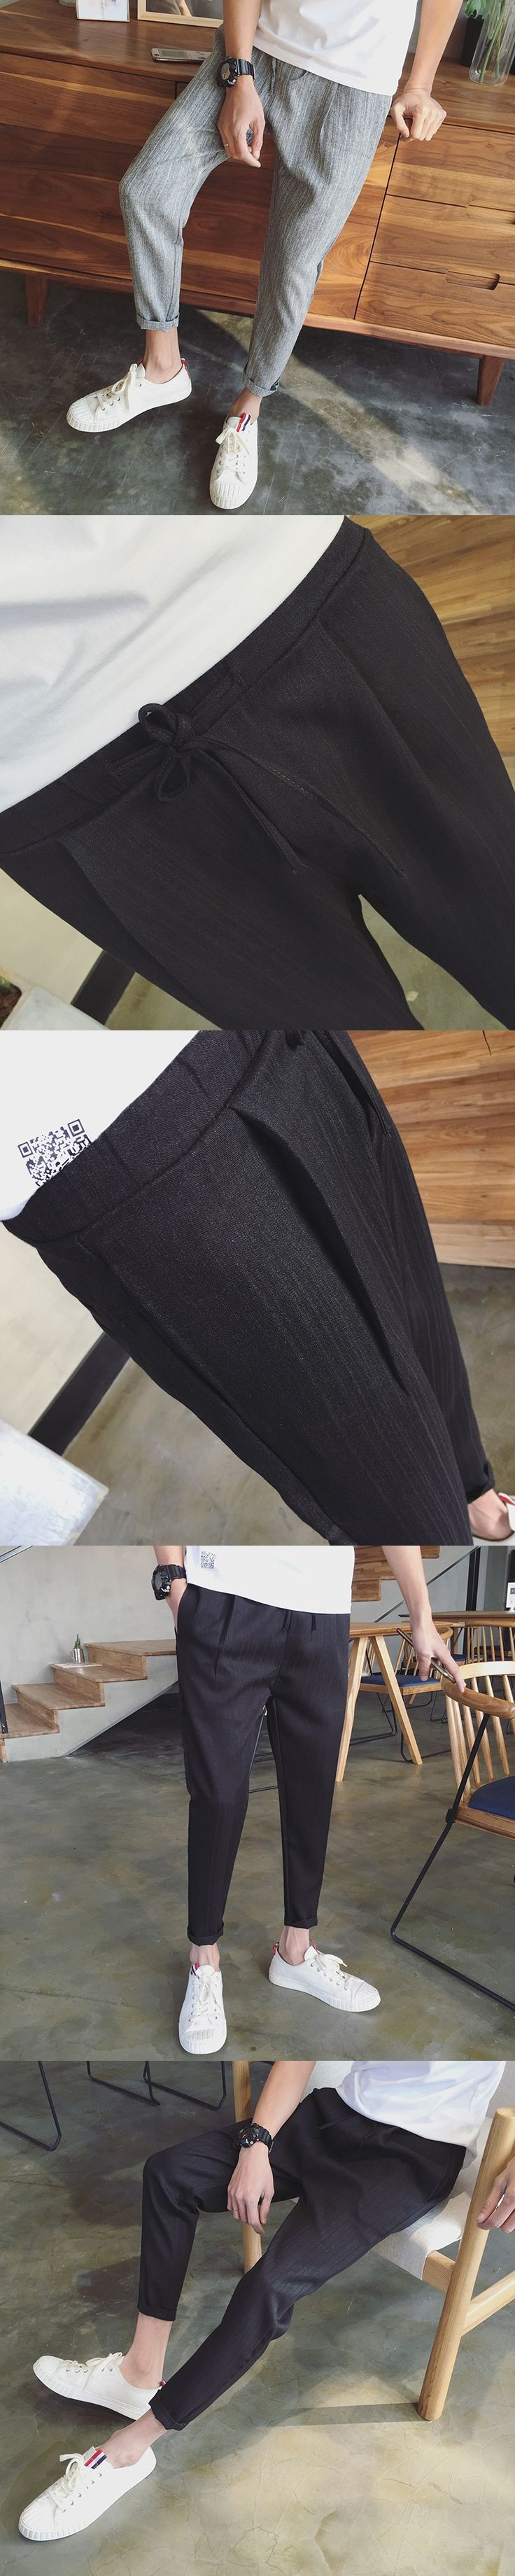 Casual  trousers men's ankle length solid color brief all-match 9 pants slim skinny pants